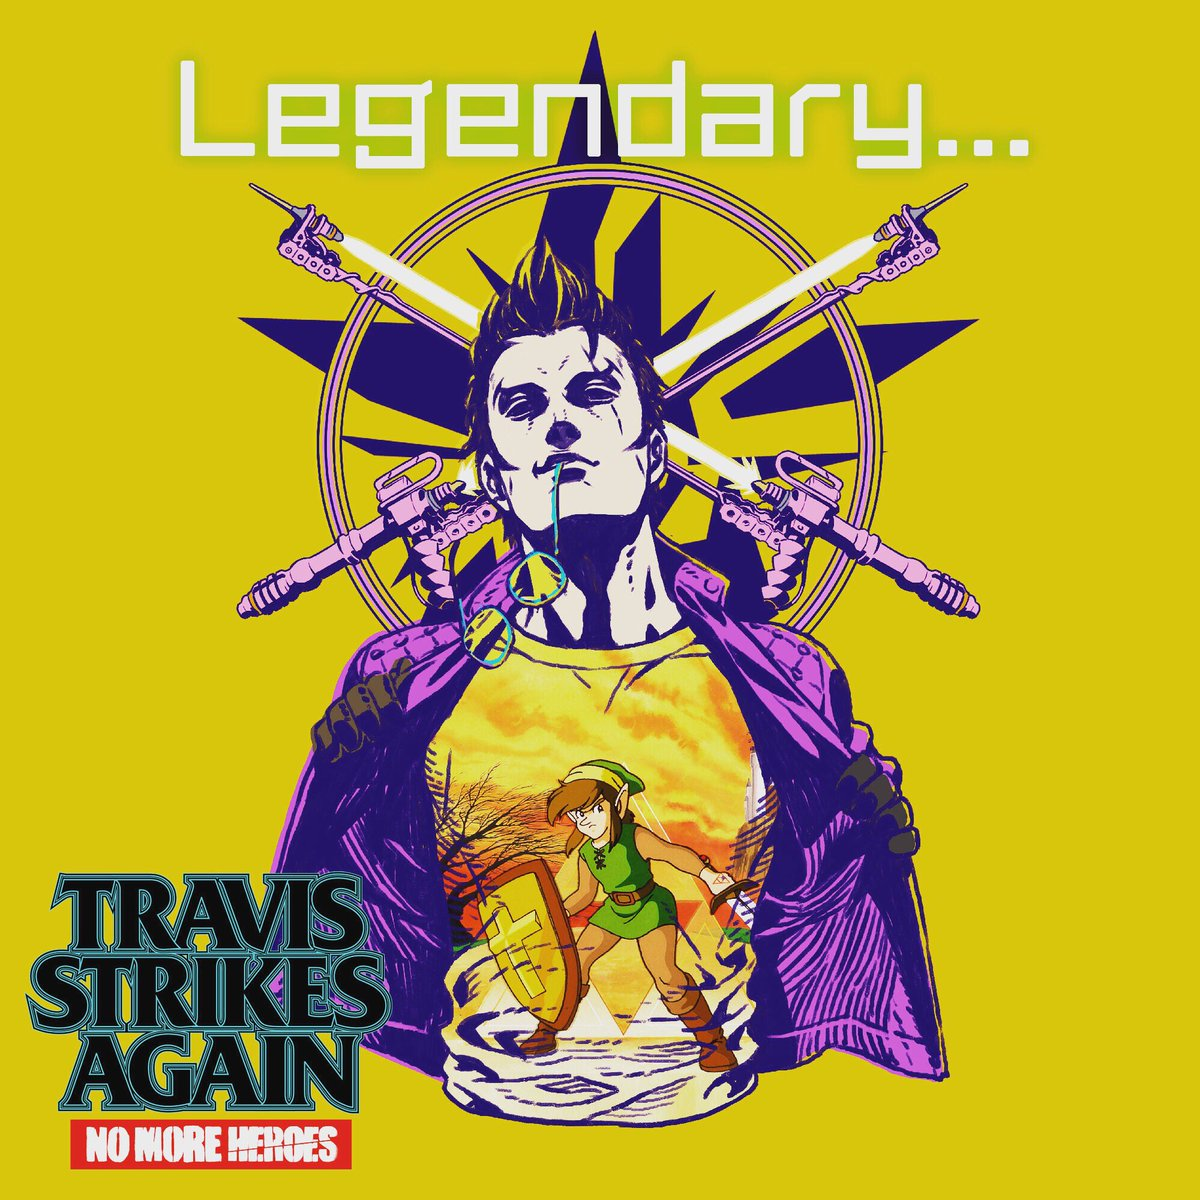 Travis Strikes Again: No More Heroes reveals new t-shirts, including Zelda II